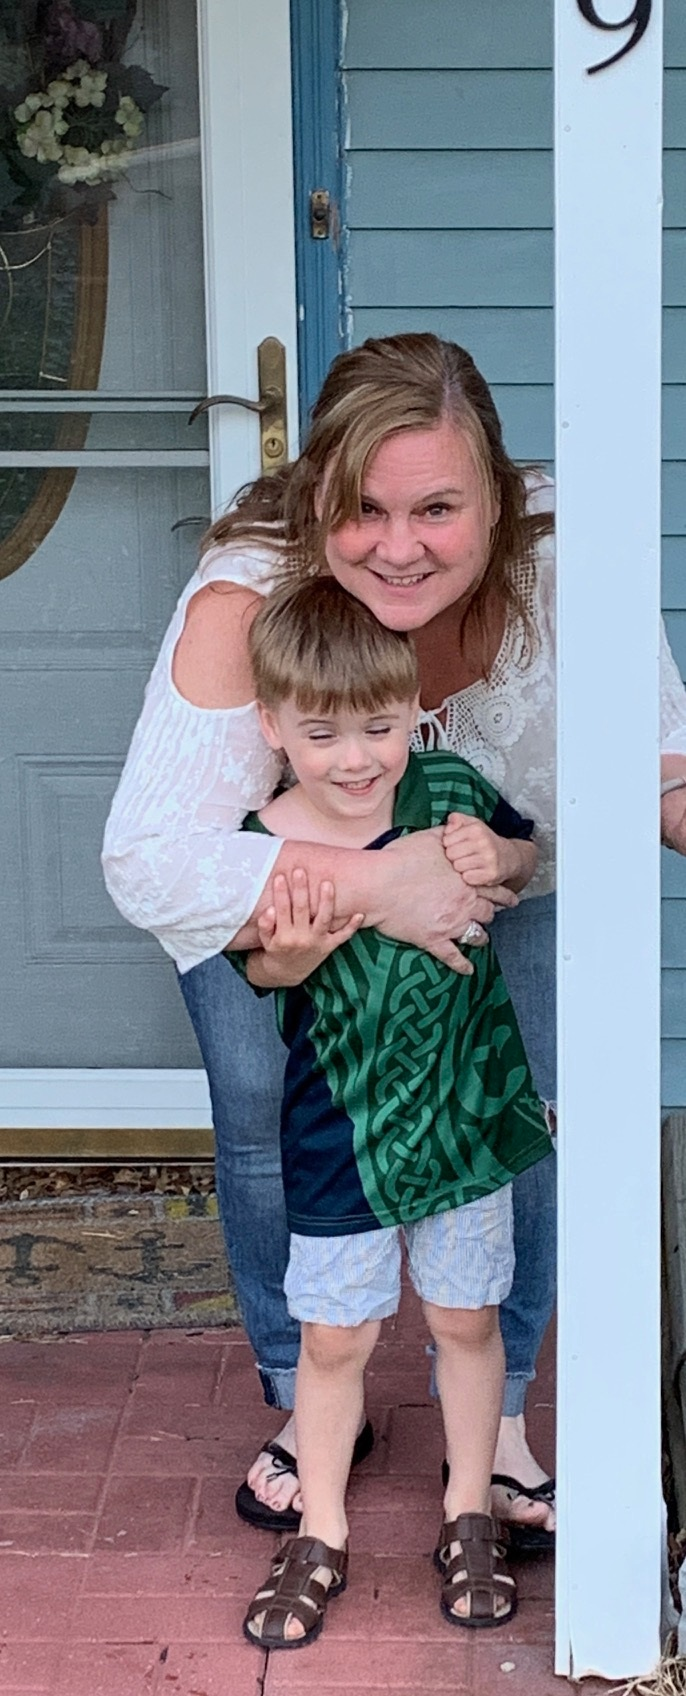 Trish with her grandson.